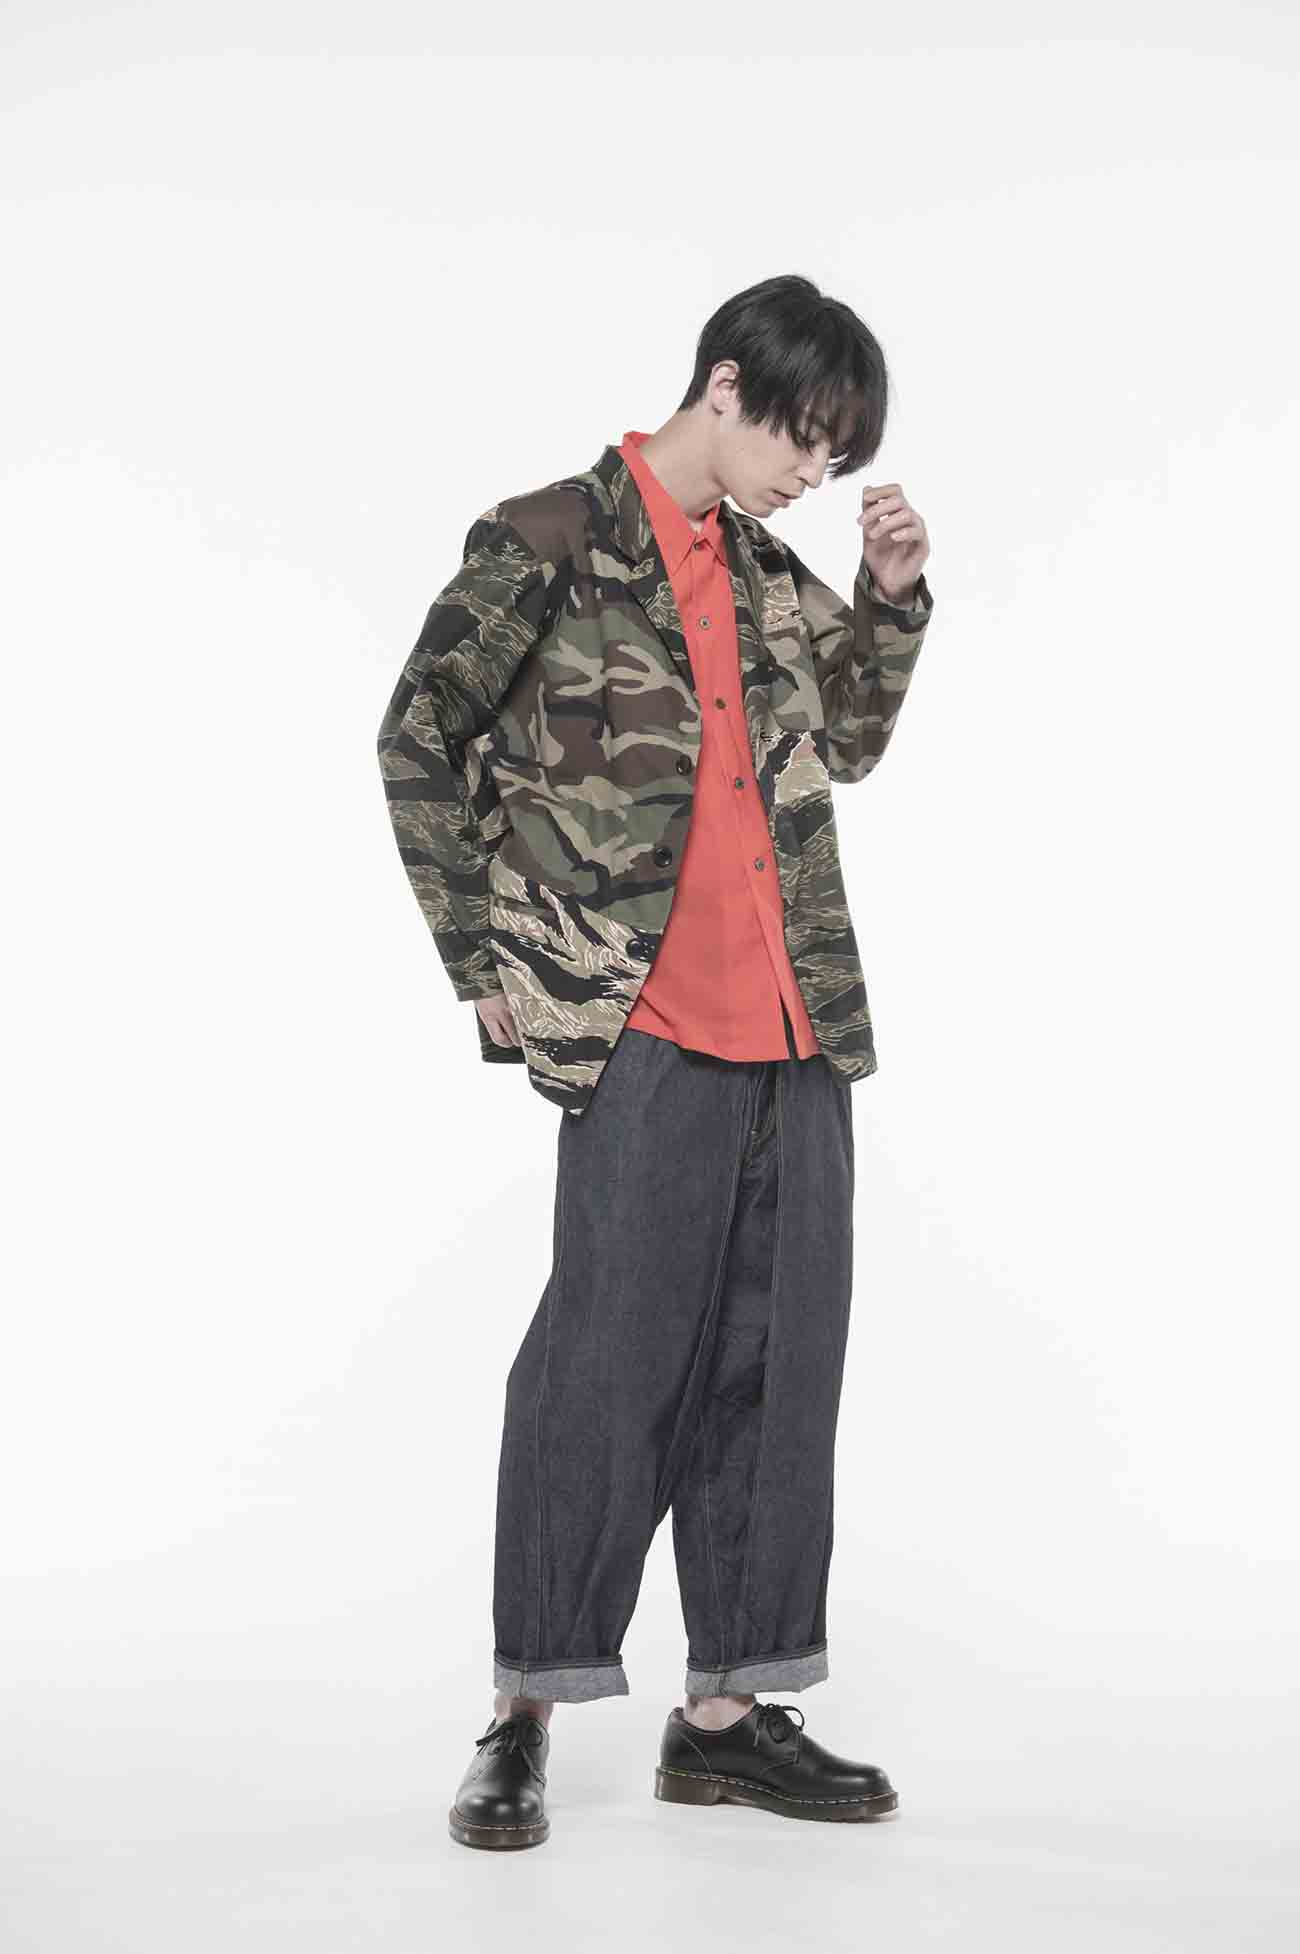 Crazy Camouflage 3BS Tailored Shirt Jacket